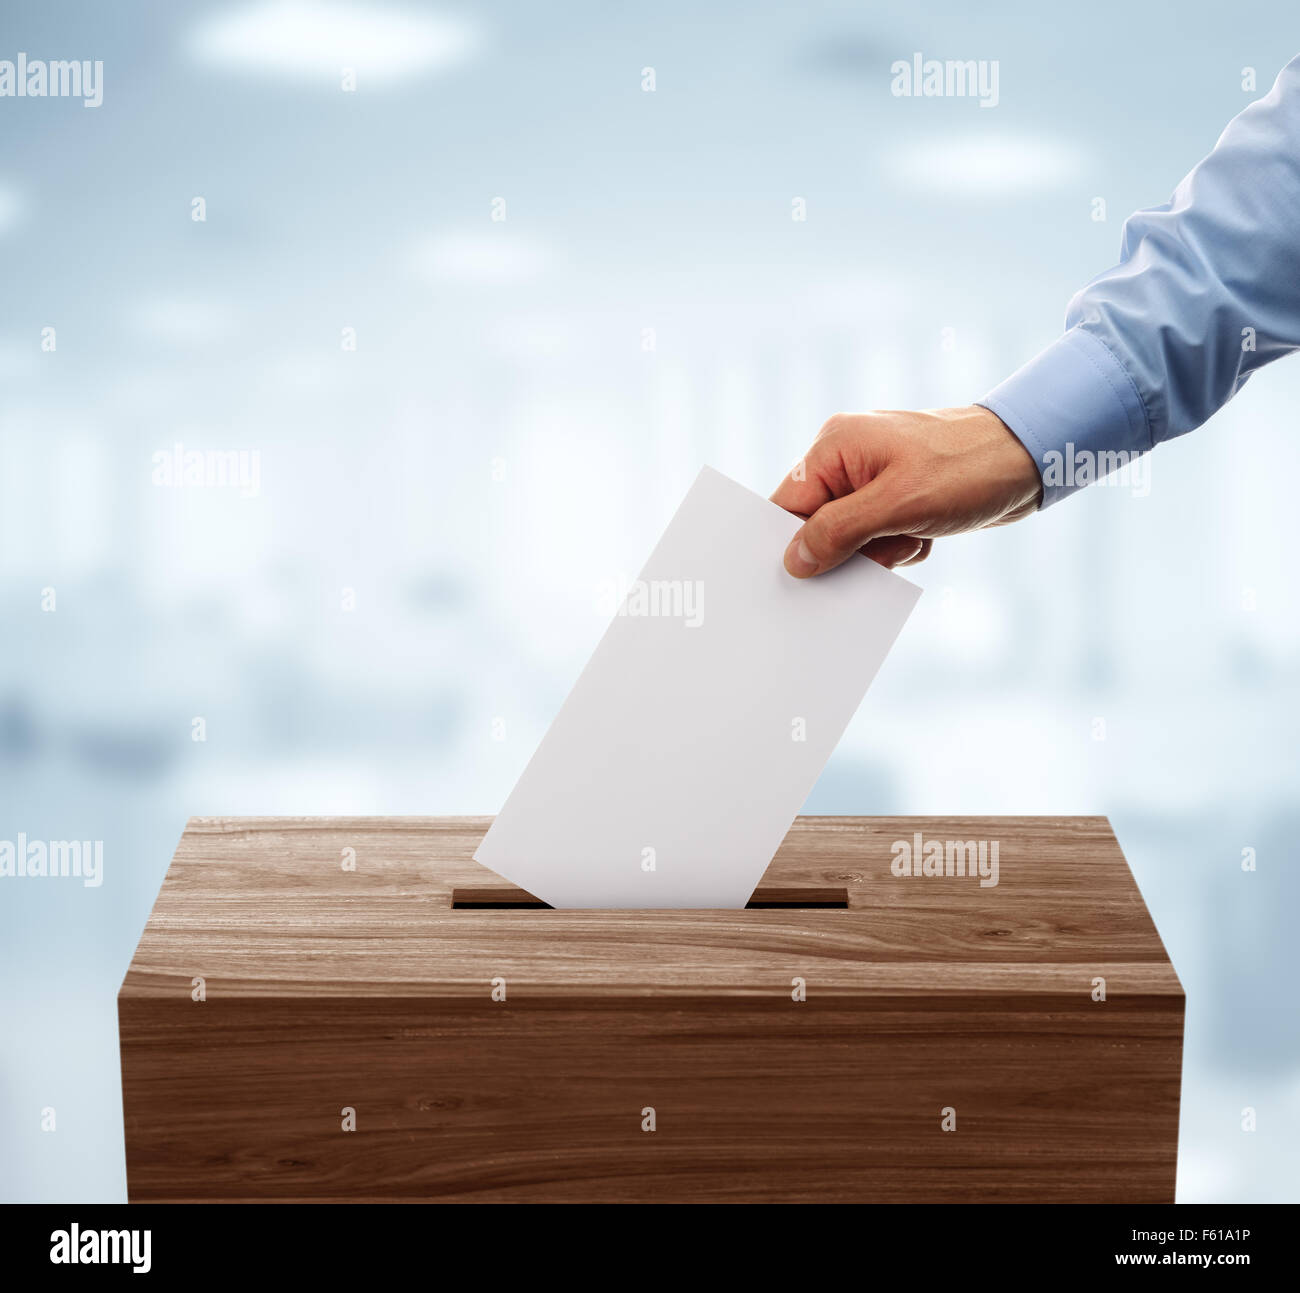 Ballot box - Stock Image